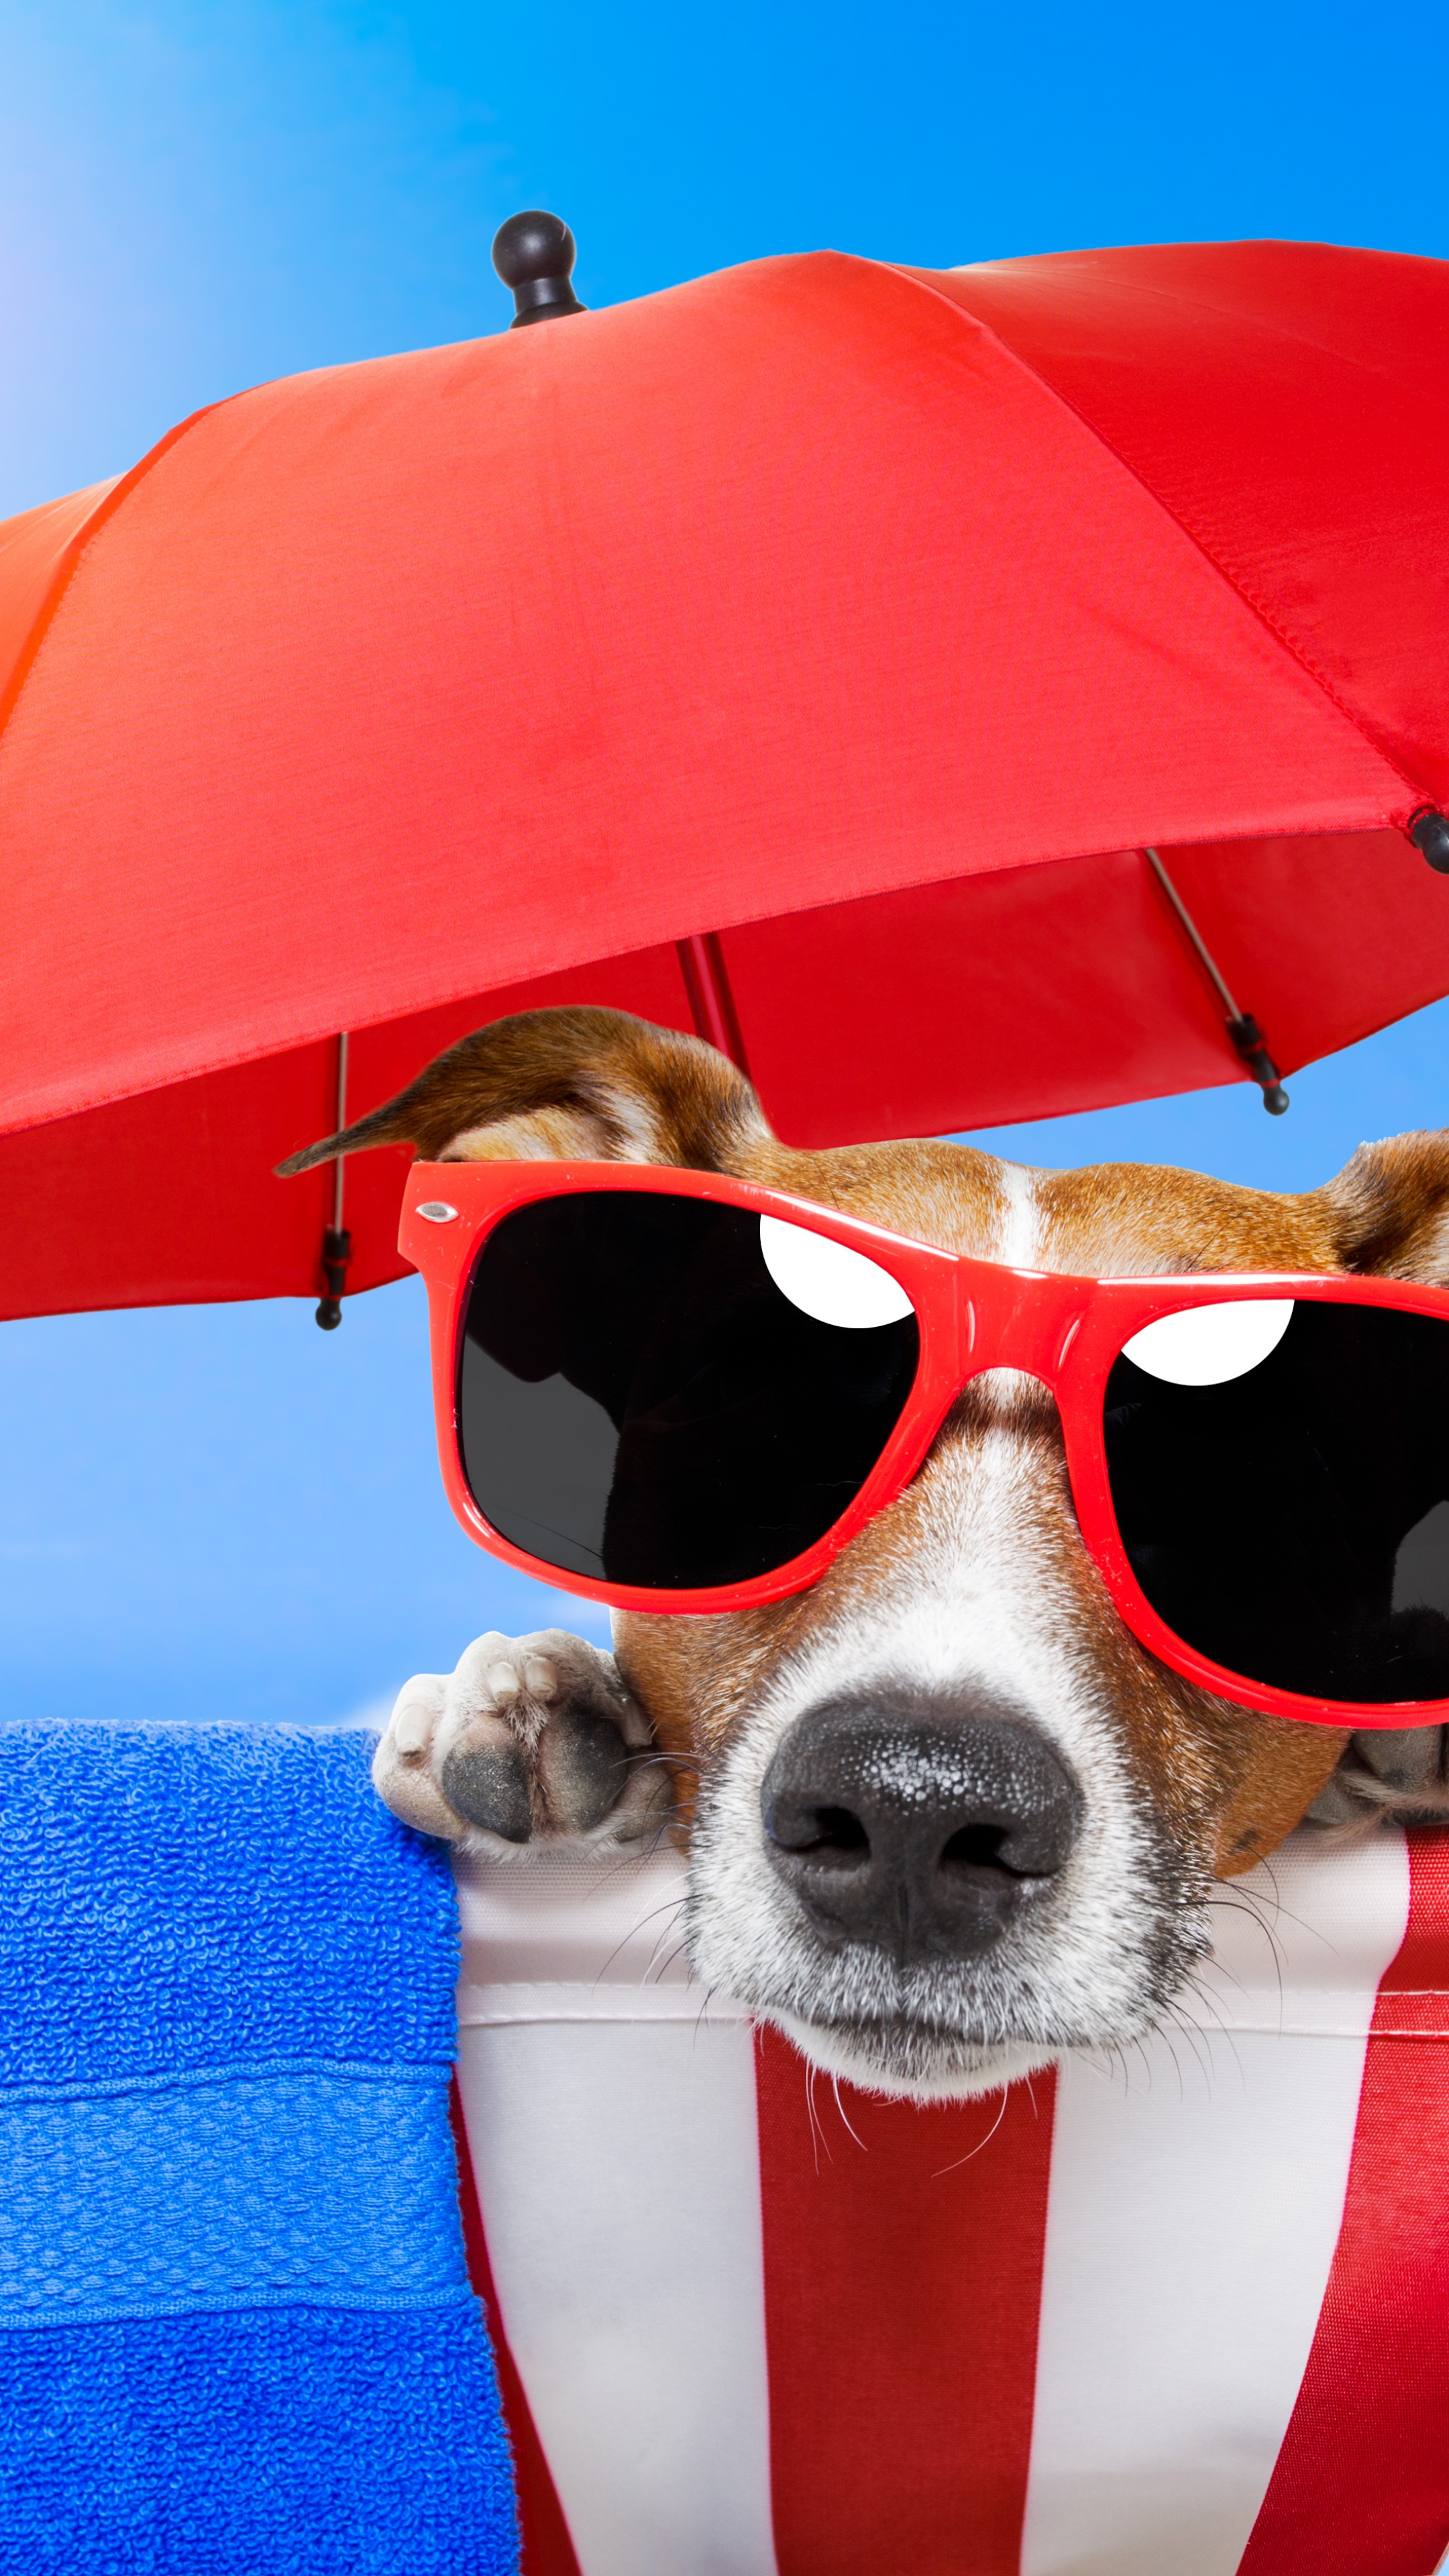 Wallpaper Dog Puppy Sun Summer Beach Sunglasses